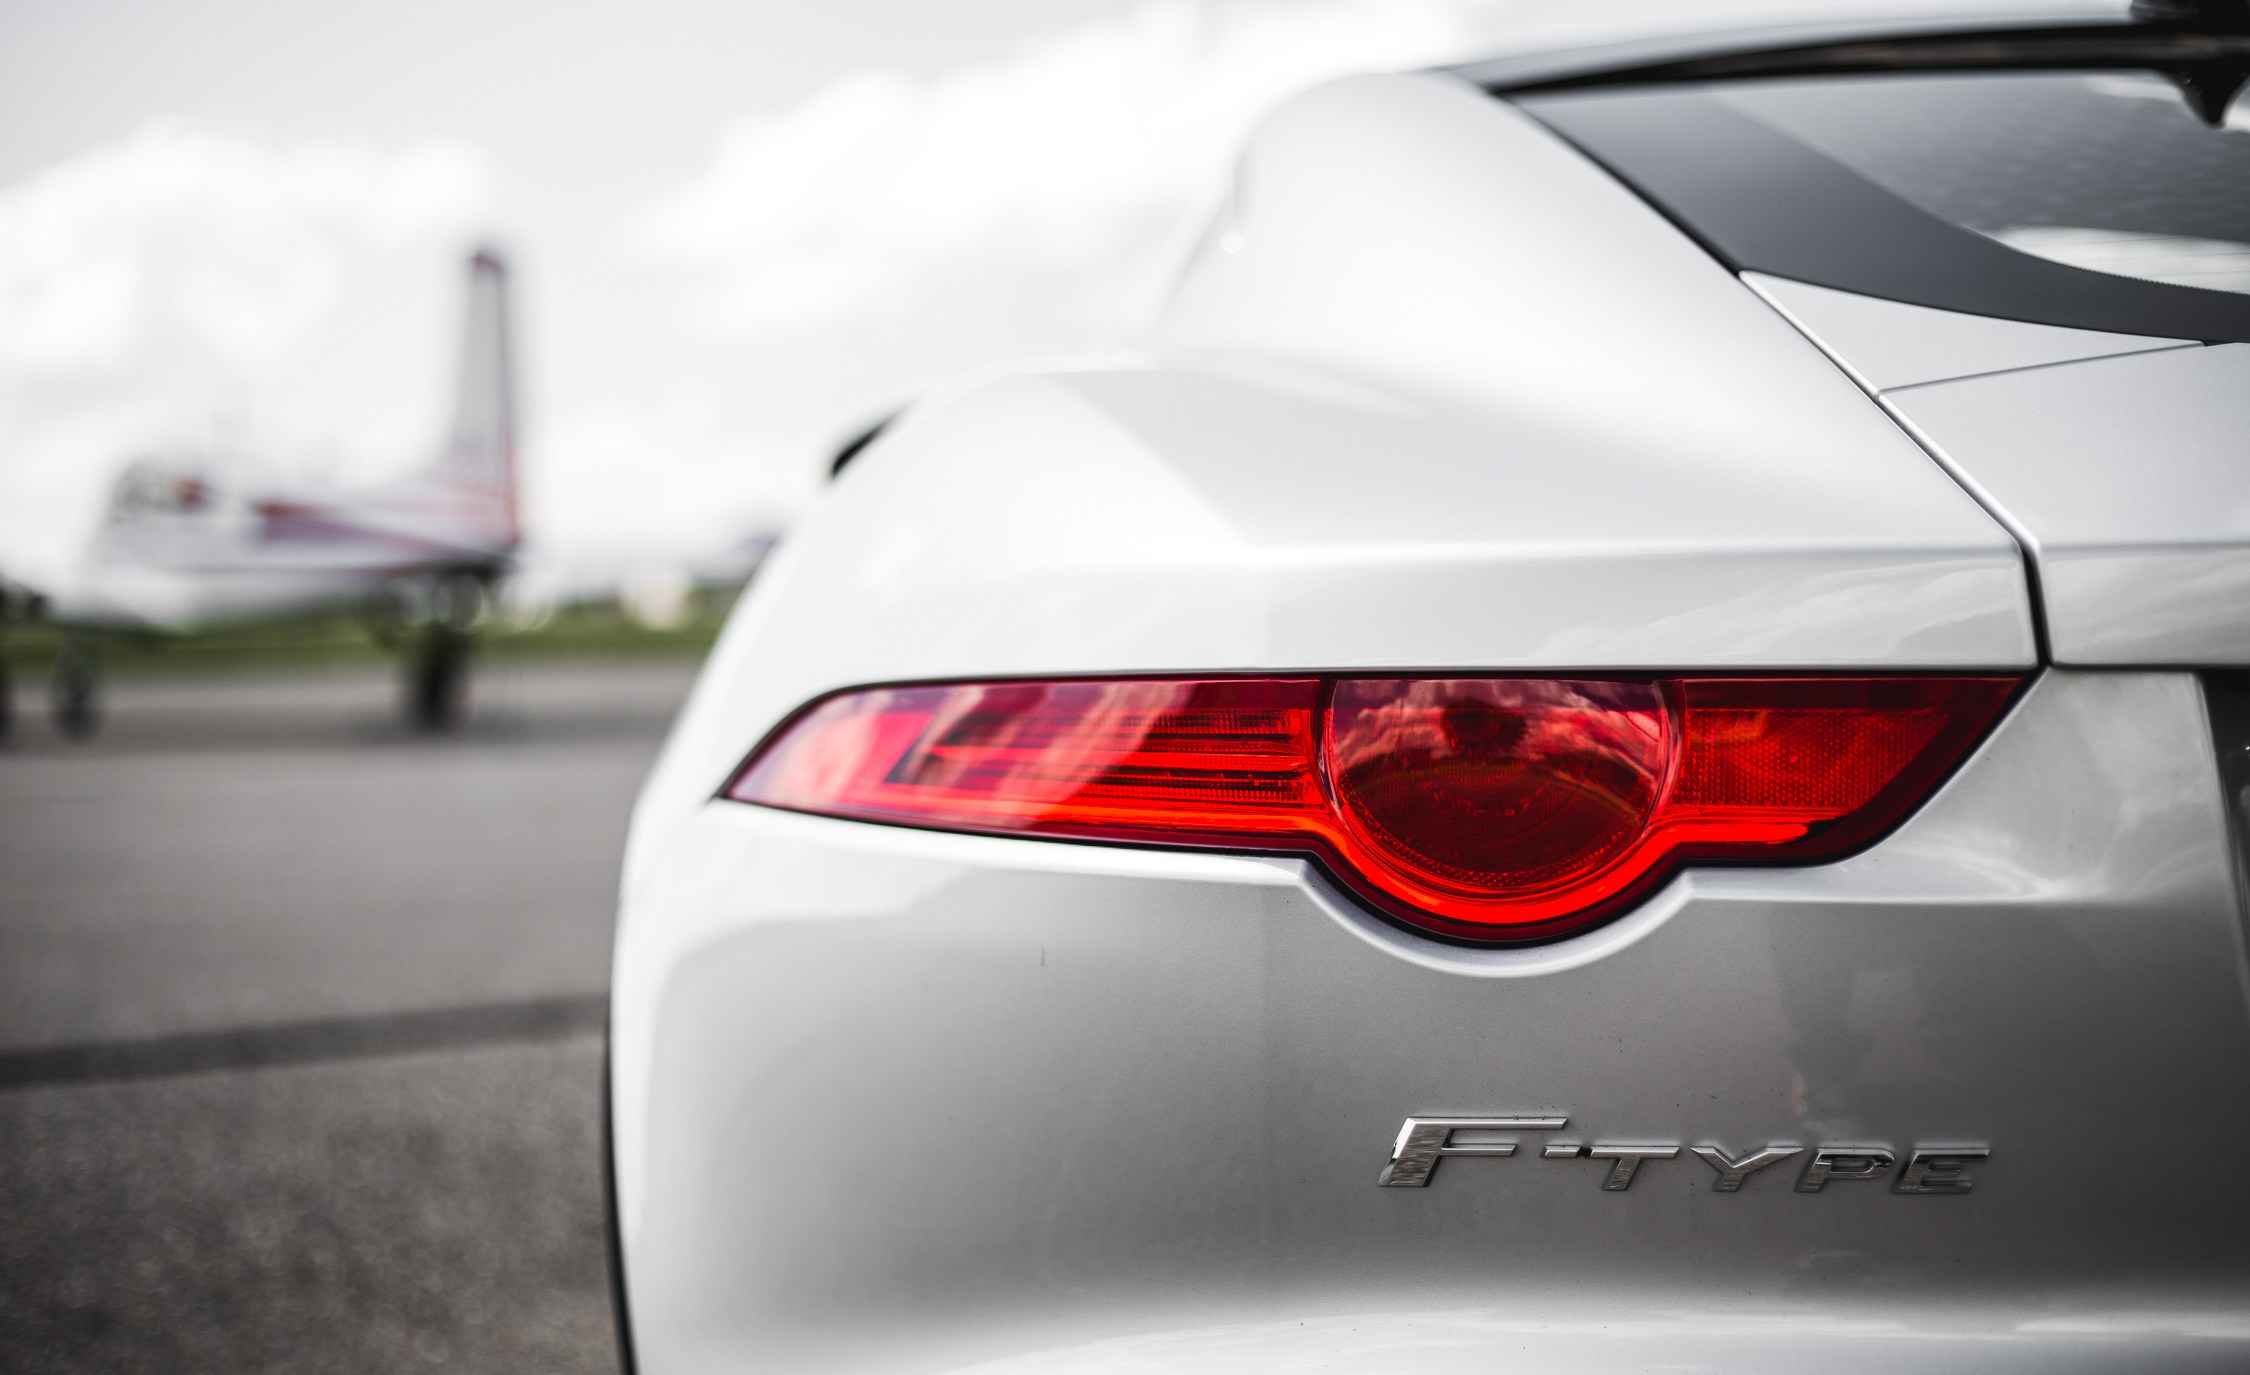 2016 Jaguar F-Type S Exterior Taillight